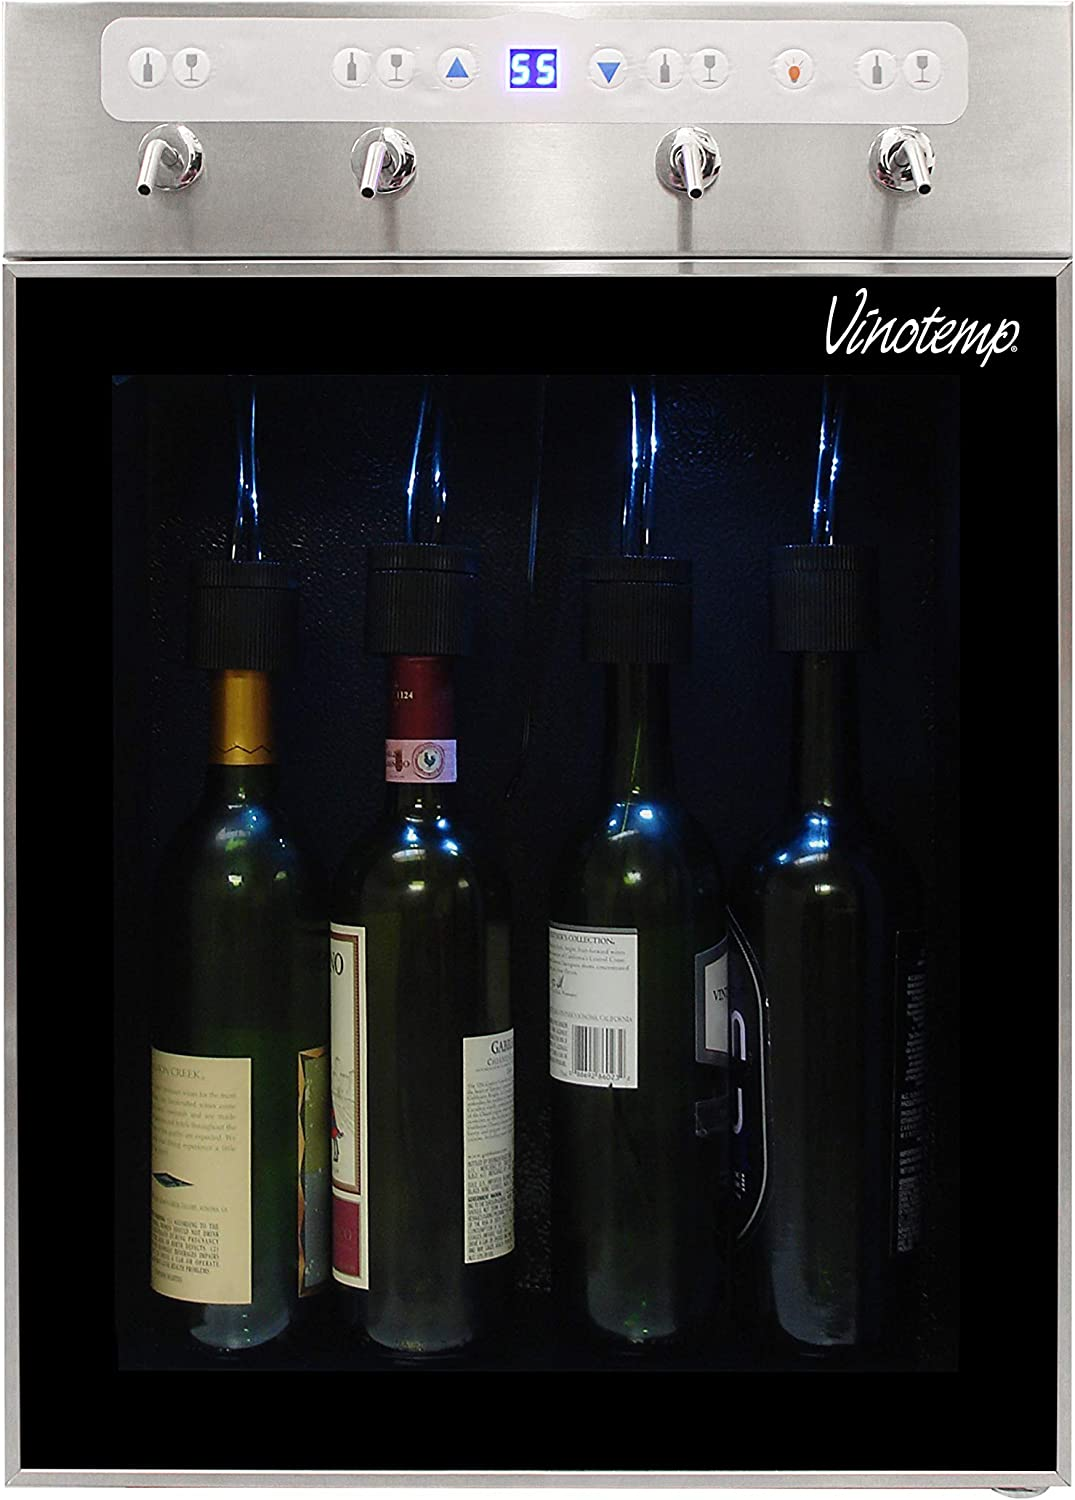 Vinotemp VT-PRWINEDIS4S 4 Bottle Stainless Wine Dispenser with Custom Portion Control and Tempurature Display for Home and Commercial use